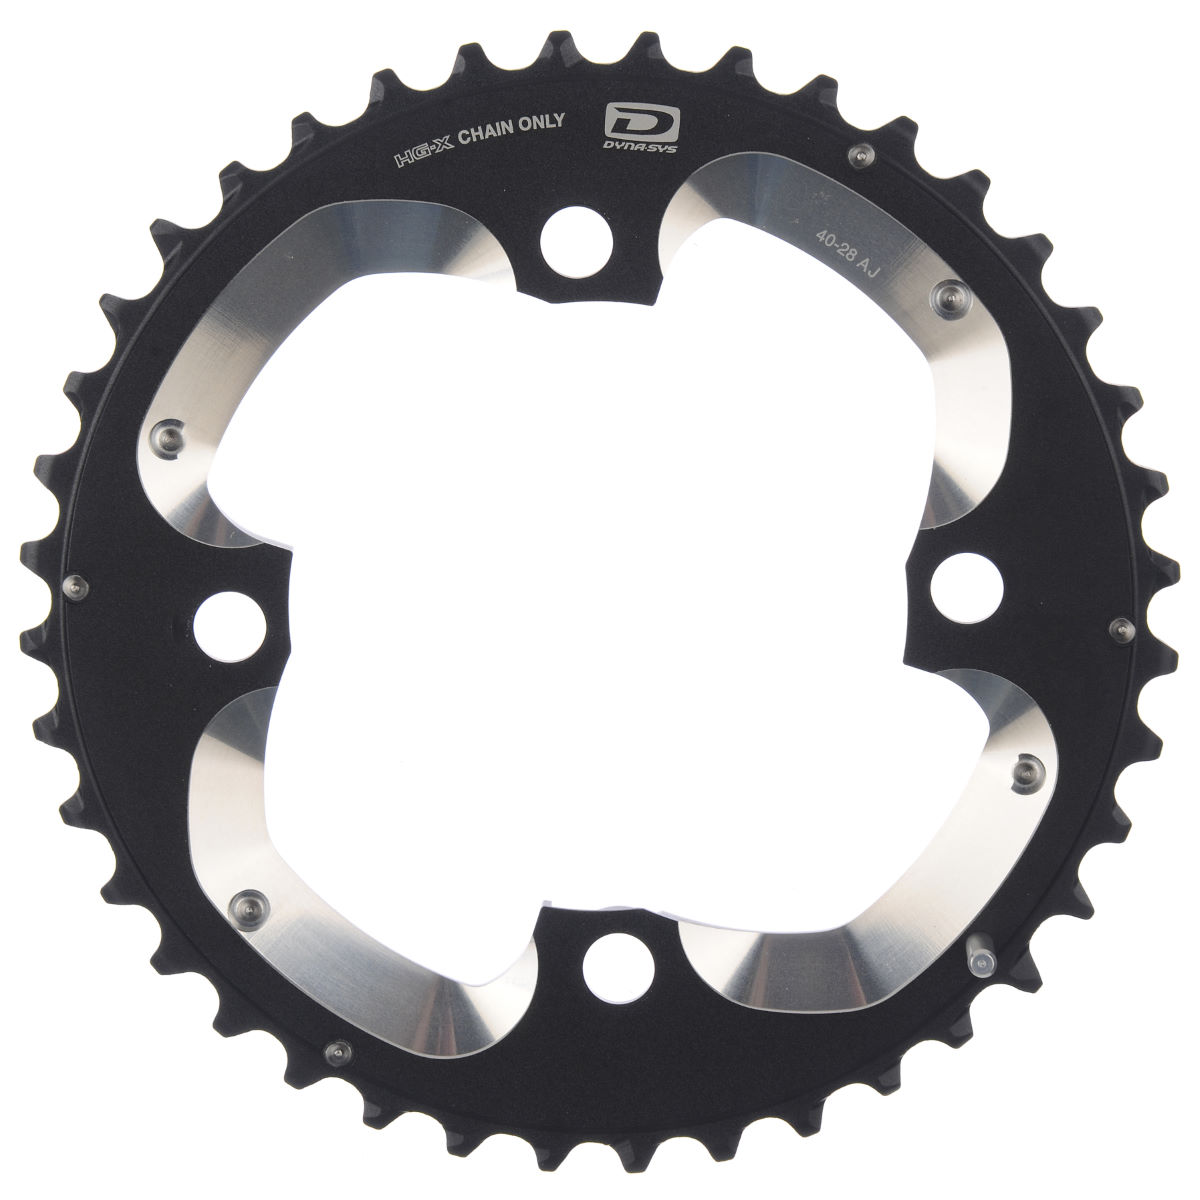 Shimano Xt Fcm785 10 Speed Double Chainring - Aj Type 40t 10 Speed